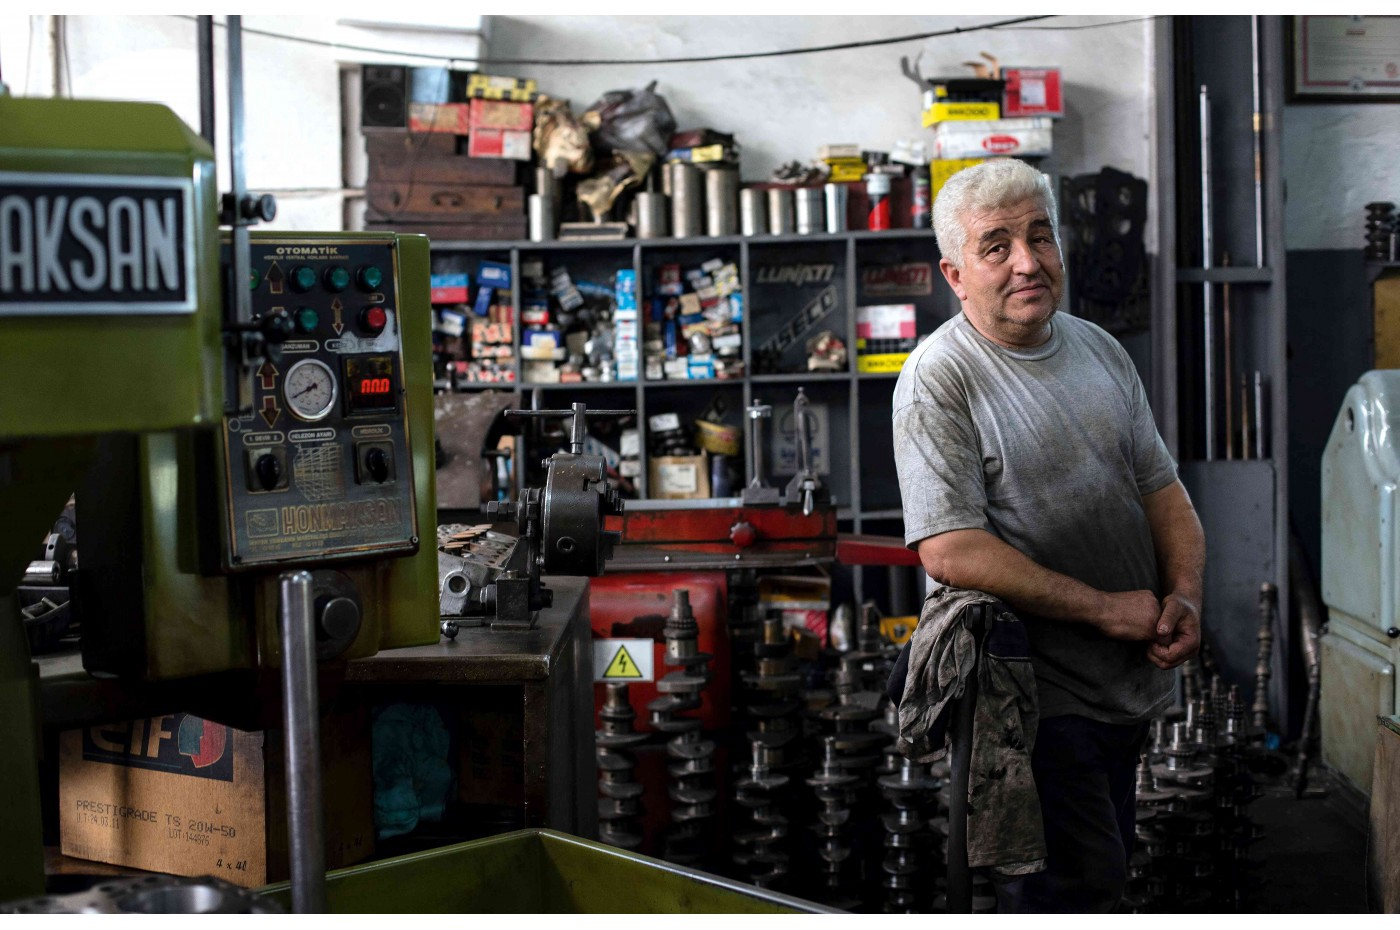 Elderly man standing in a workshop in dirty work clothes.